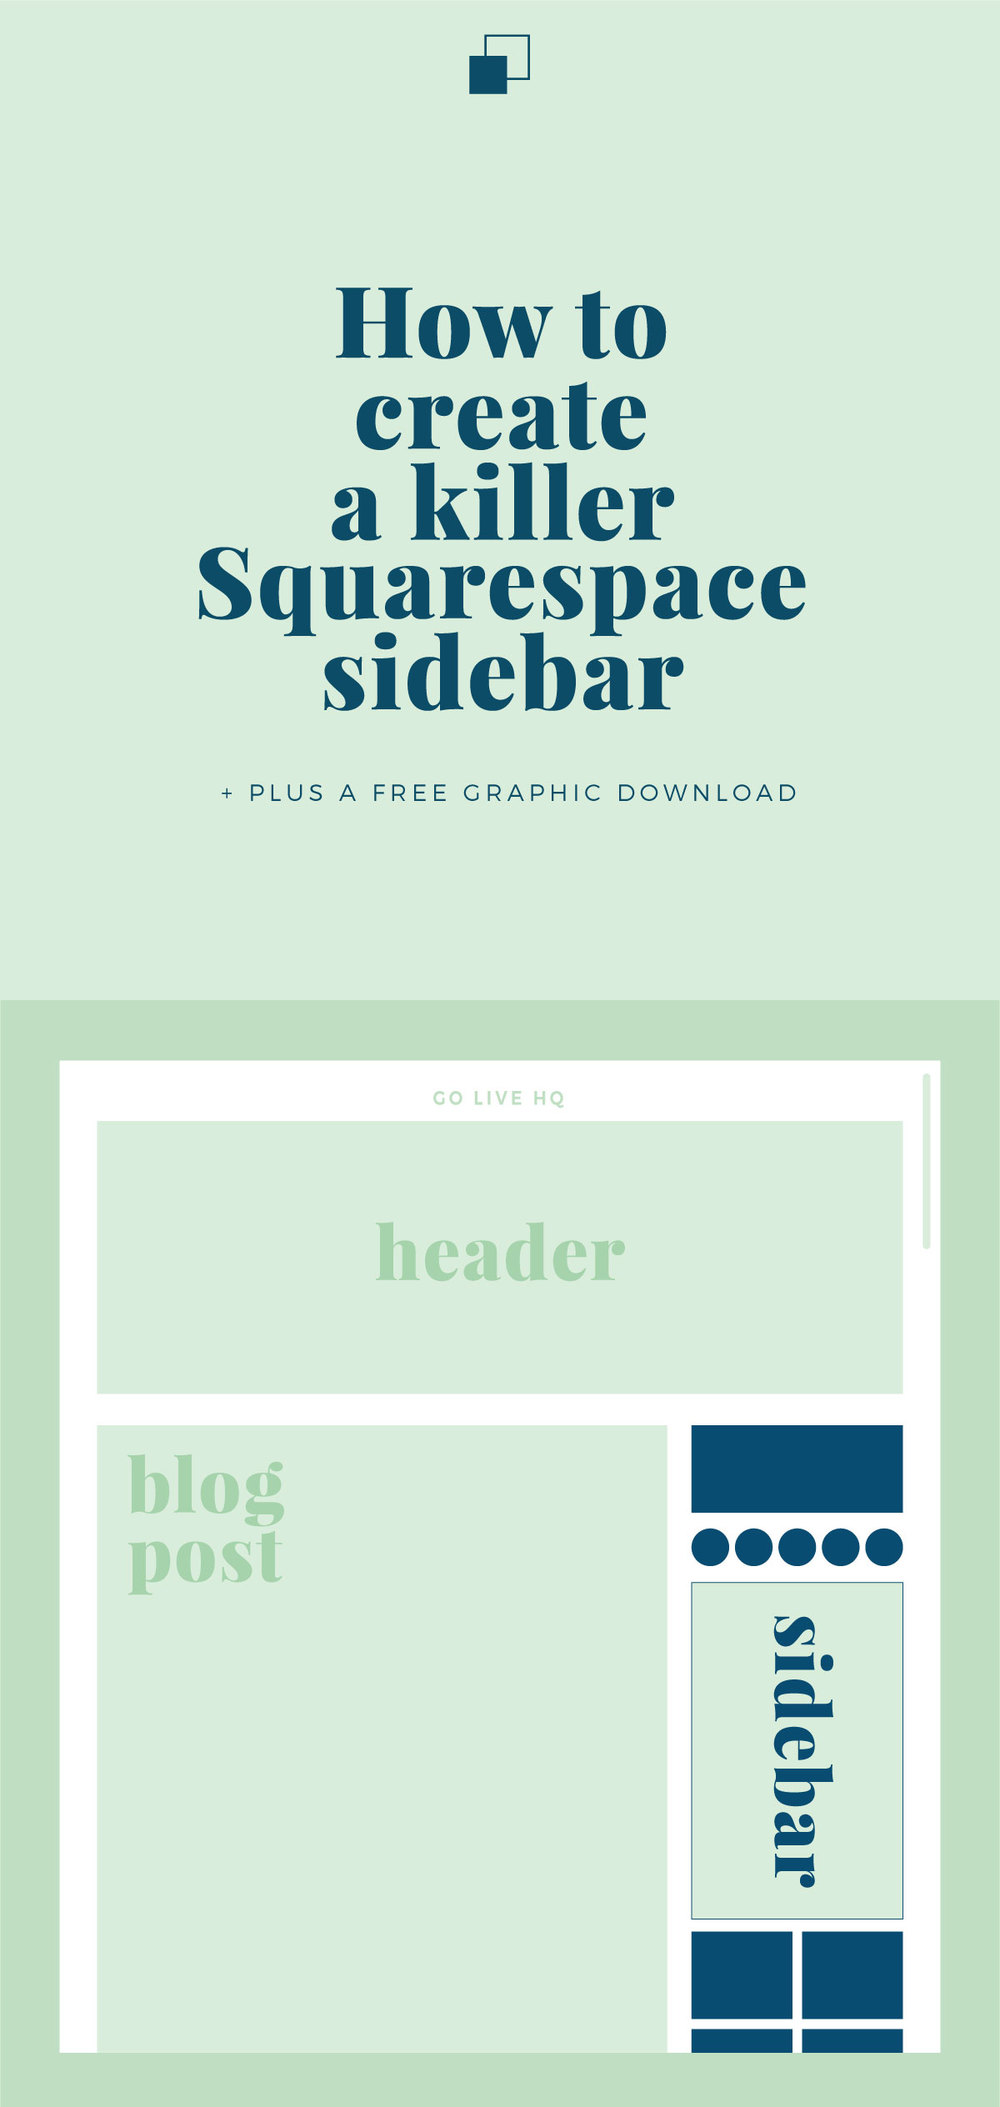 HOW TO CREATE A KILLER SQUARESPACE SIDE BAR + FREE GRAPHIC DOWNLOAD | golivehq.co/blog